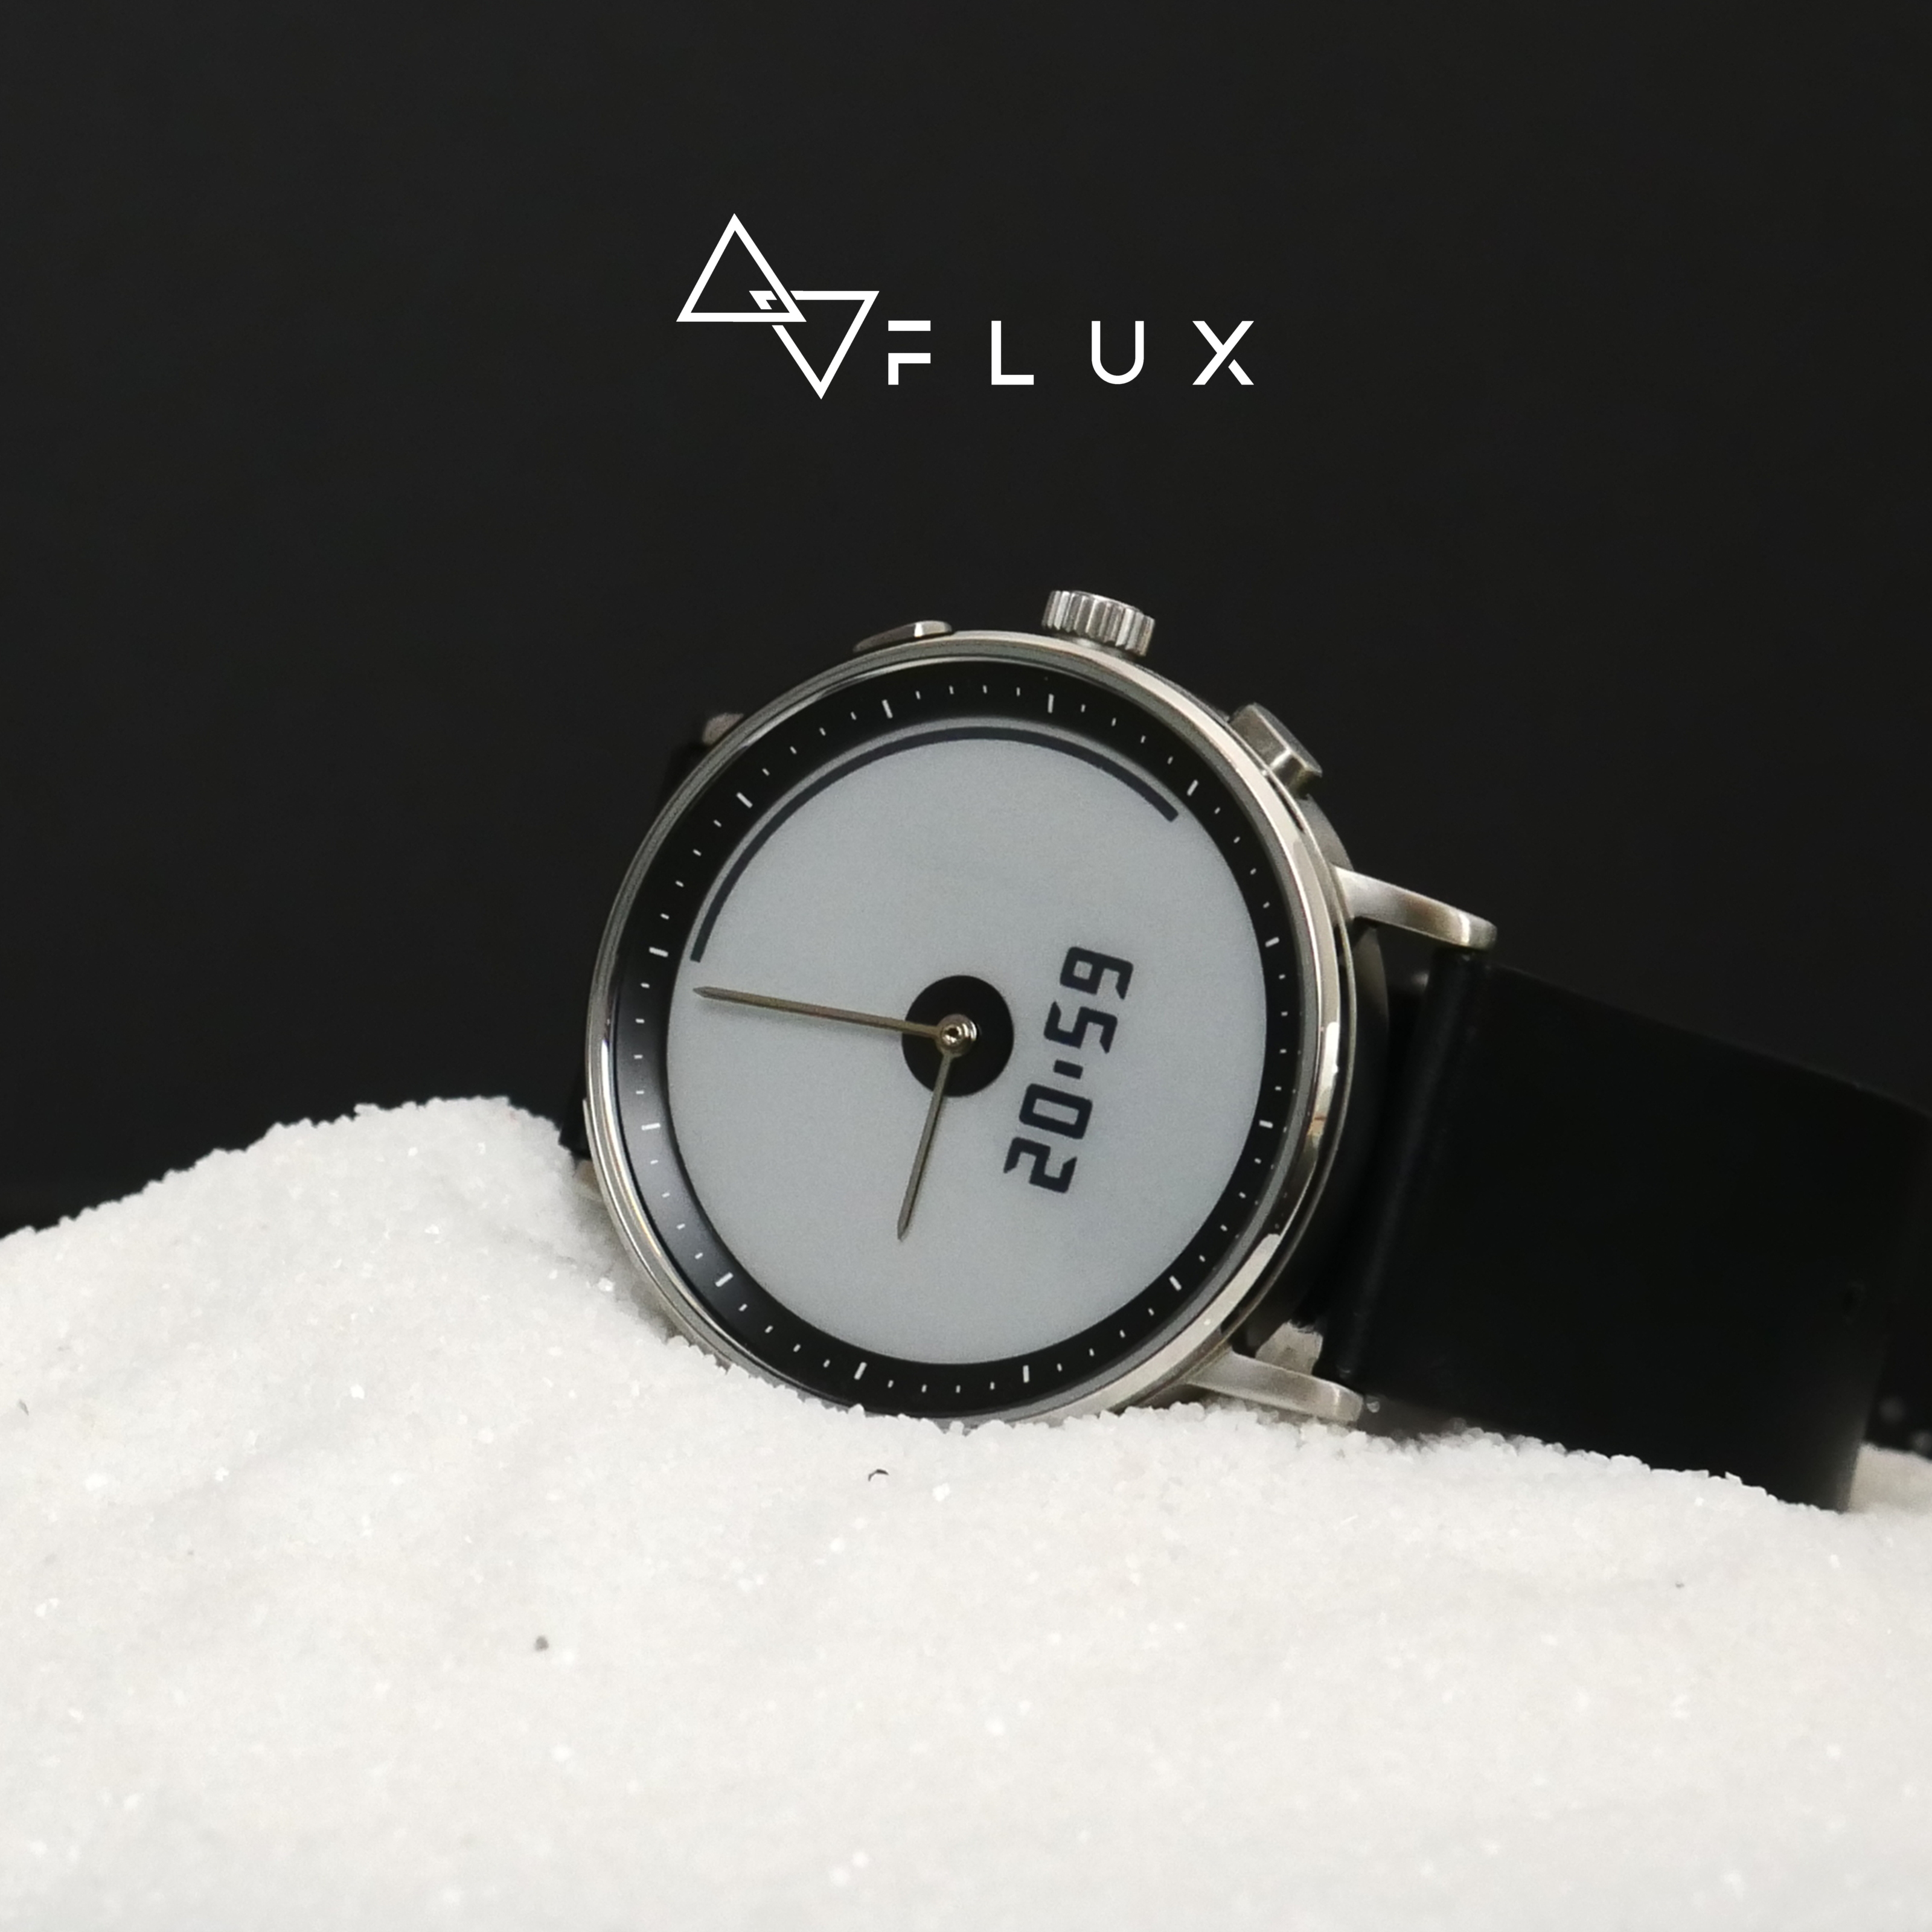 Flux $1000 Smartwatch Giveaway